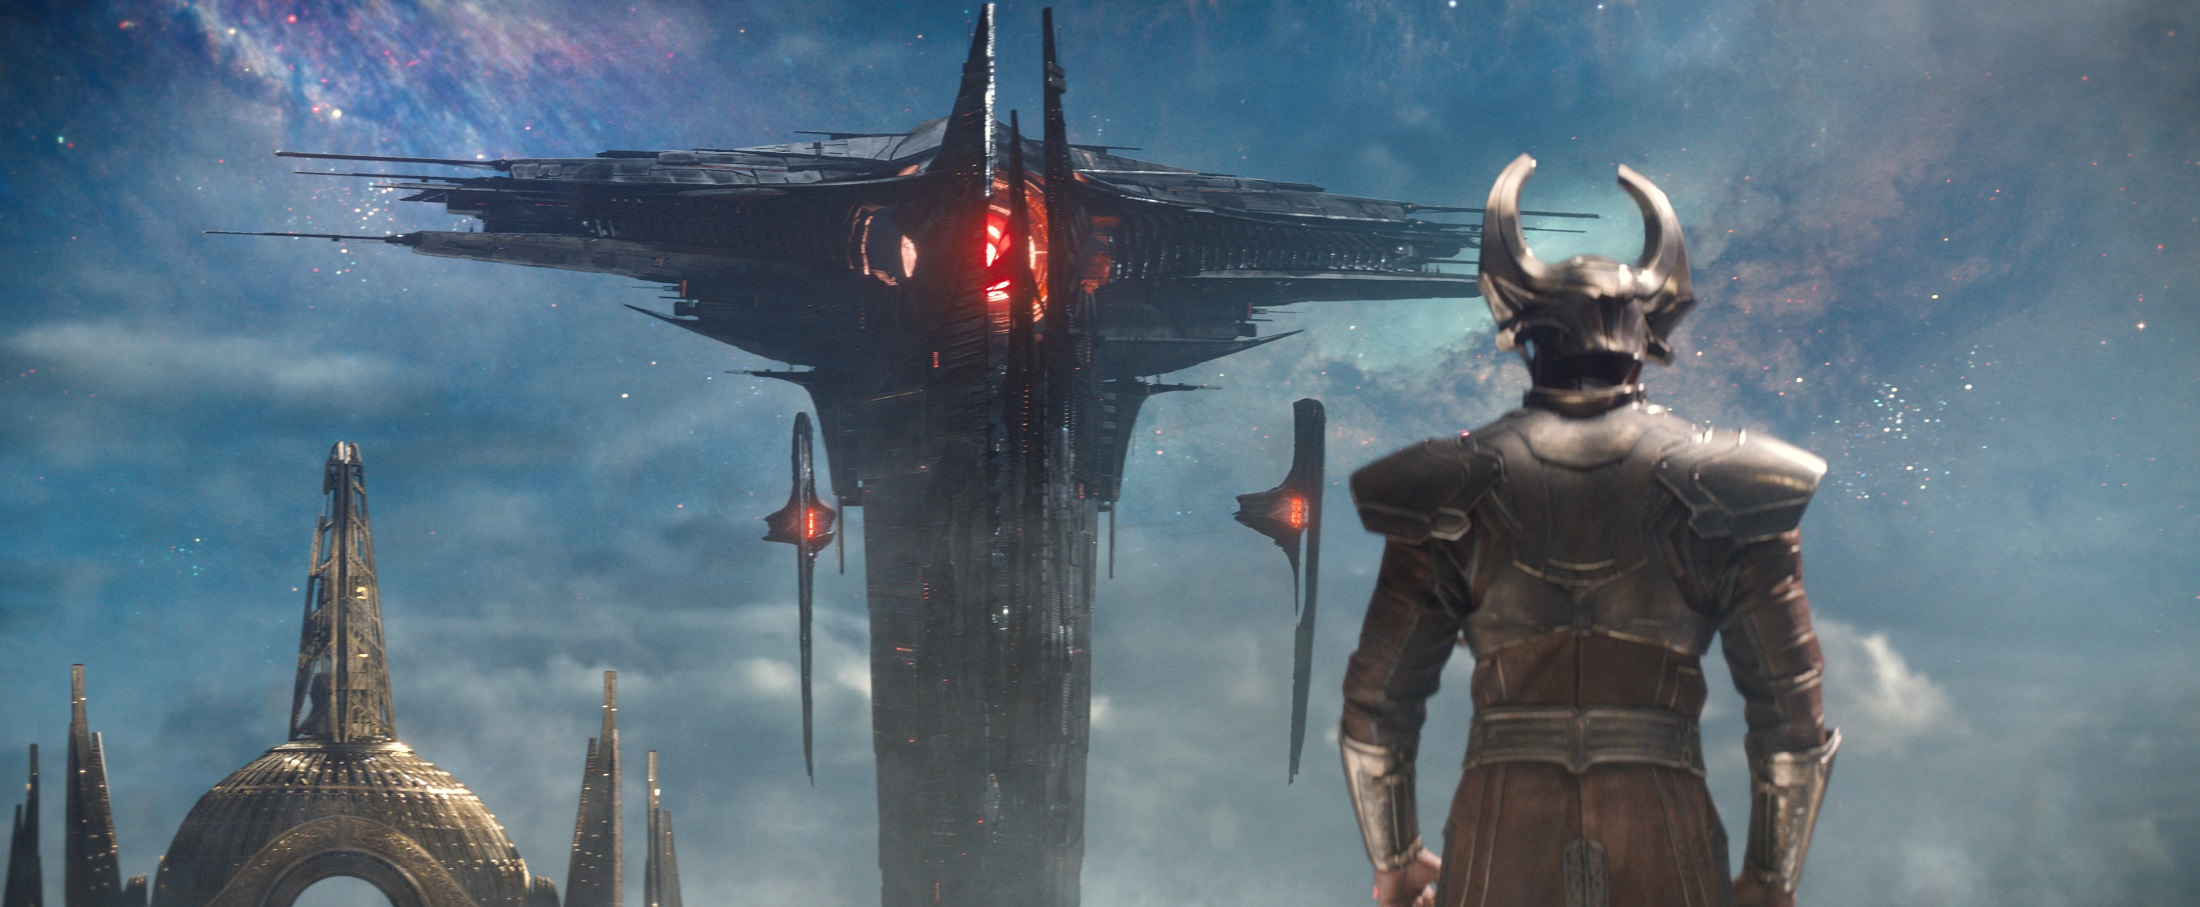 http://vignette3.wikia.nocookie.net/marvelcinematicuniverse/images/4/4c/Heimdall_vs_Dark_Ellf_Ship.jpg/revision/latest?cb=20131101150934